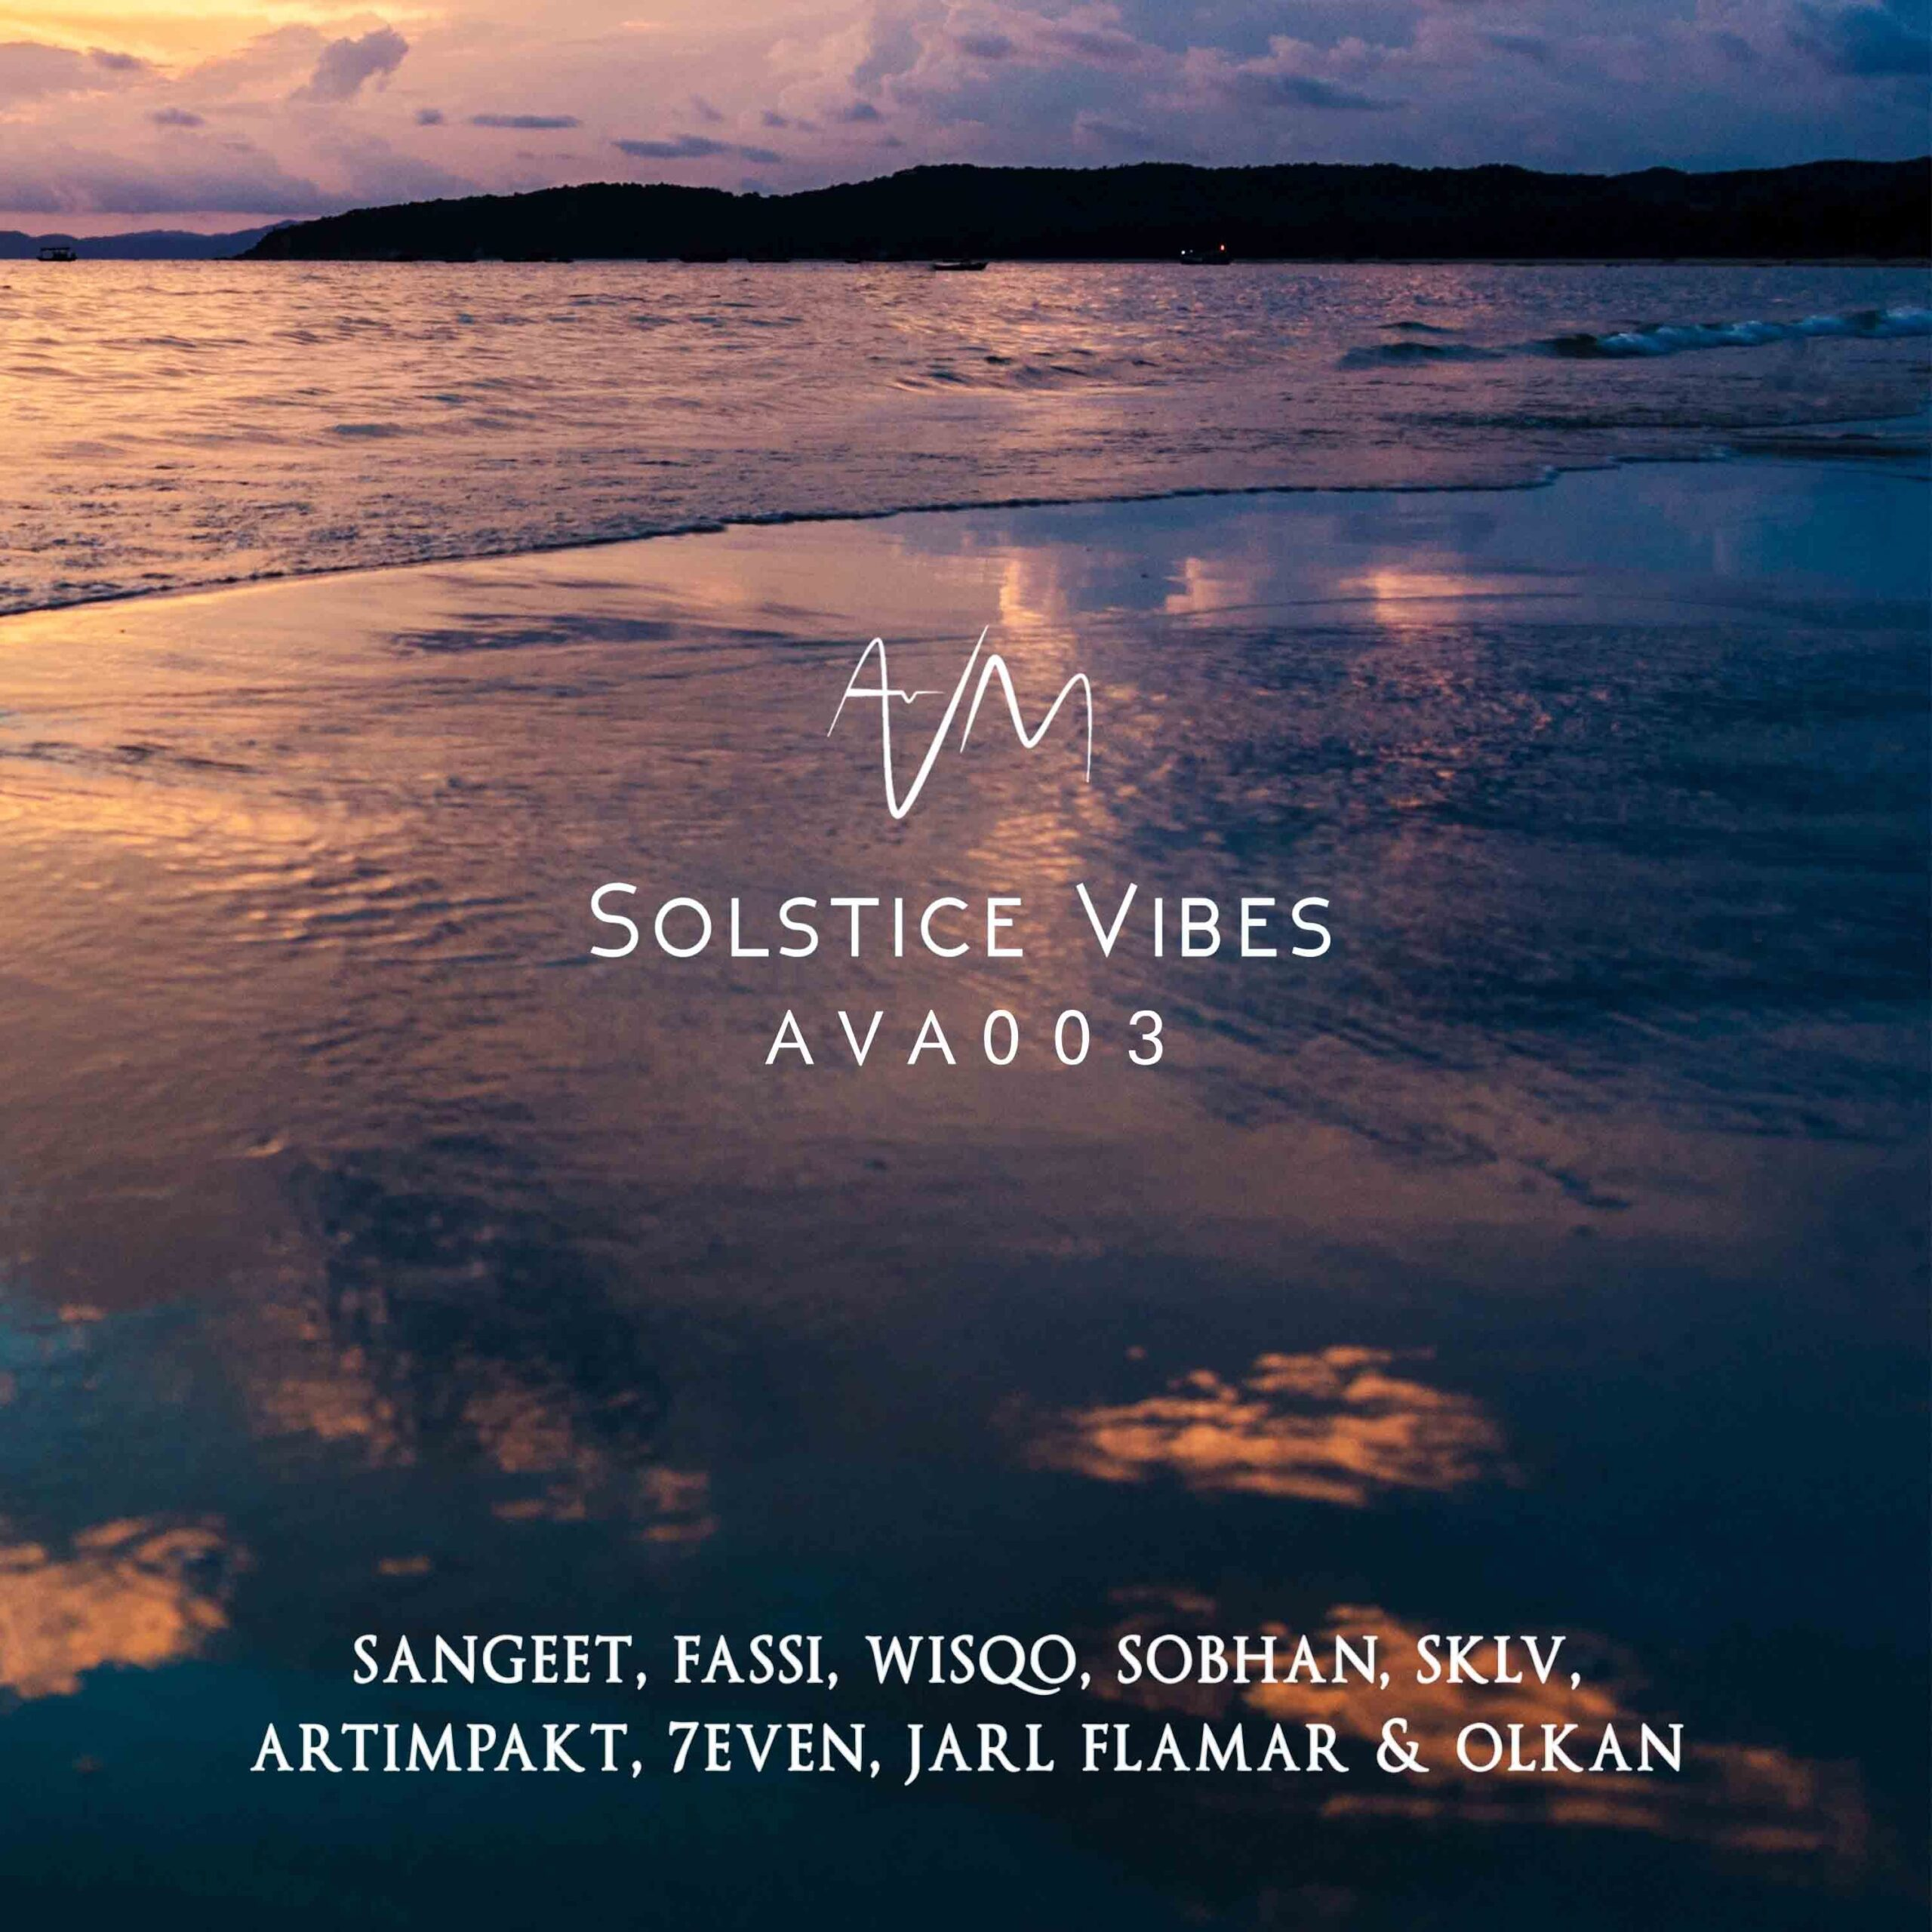 AVA003 – Solstice Vibes